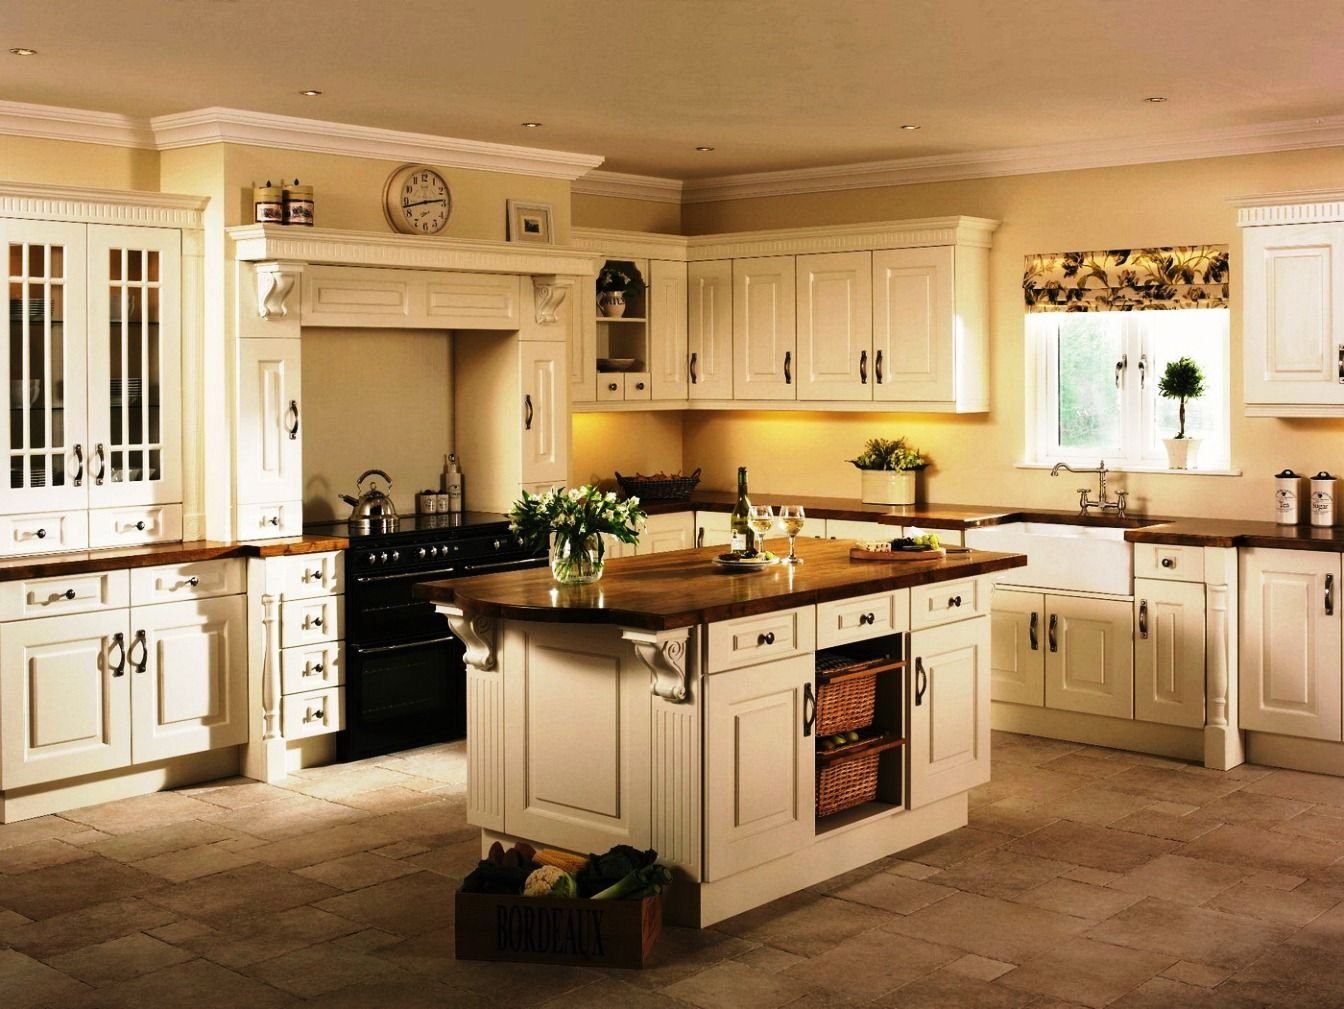 Cream Cabinets Cream Painted Kitchen Cabinets Country Kitchen Cabinets Classic Kitchens